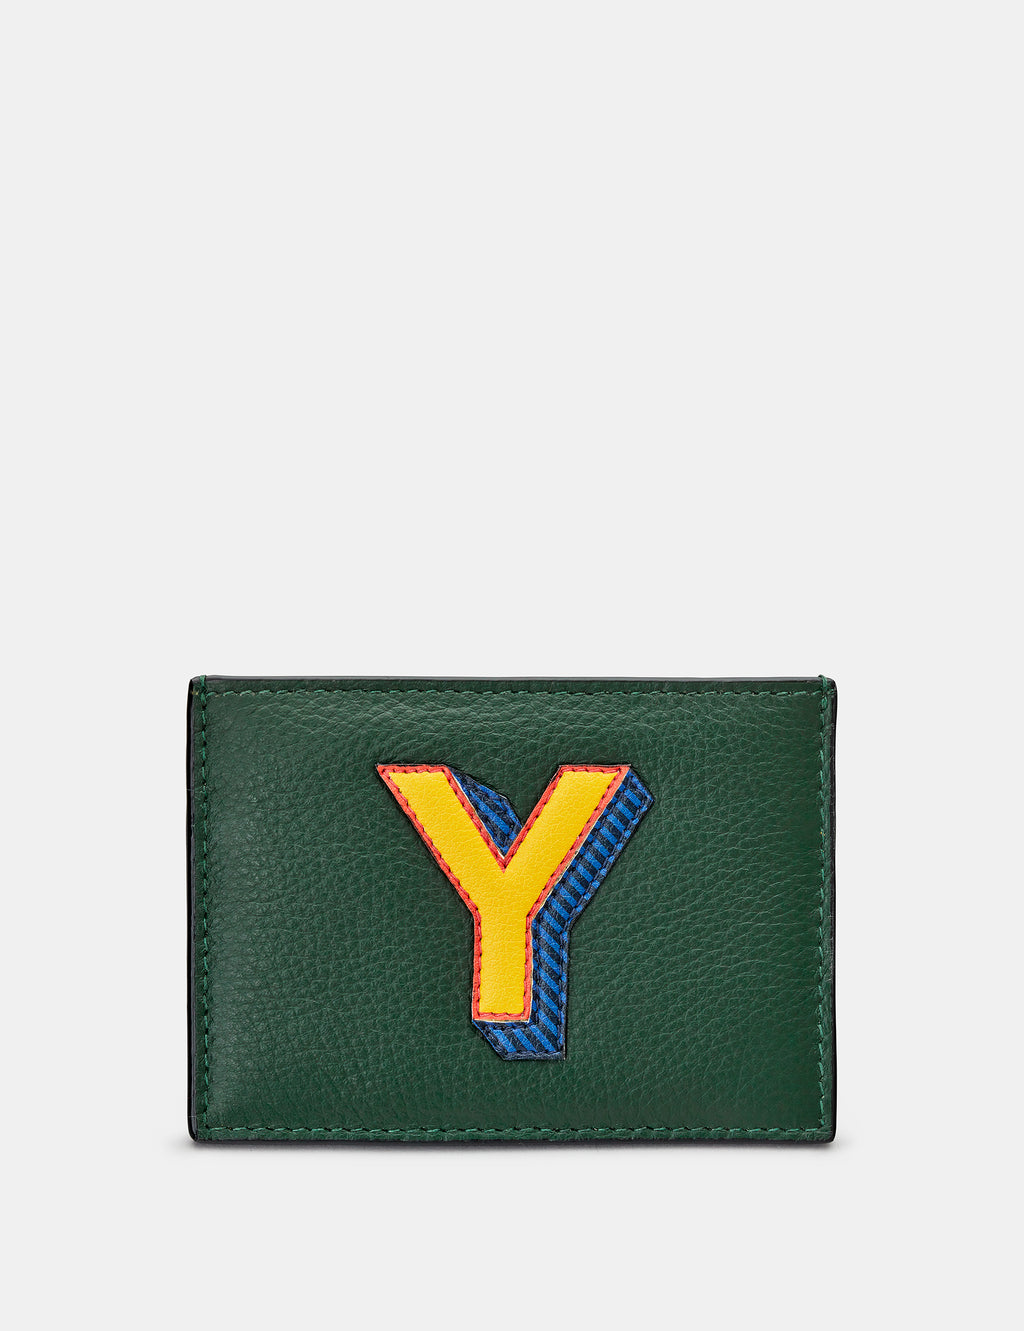 Y Initial Green Leather Card Holder